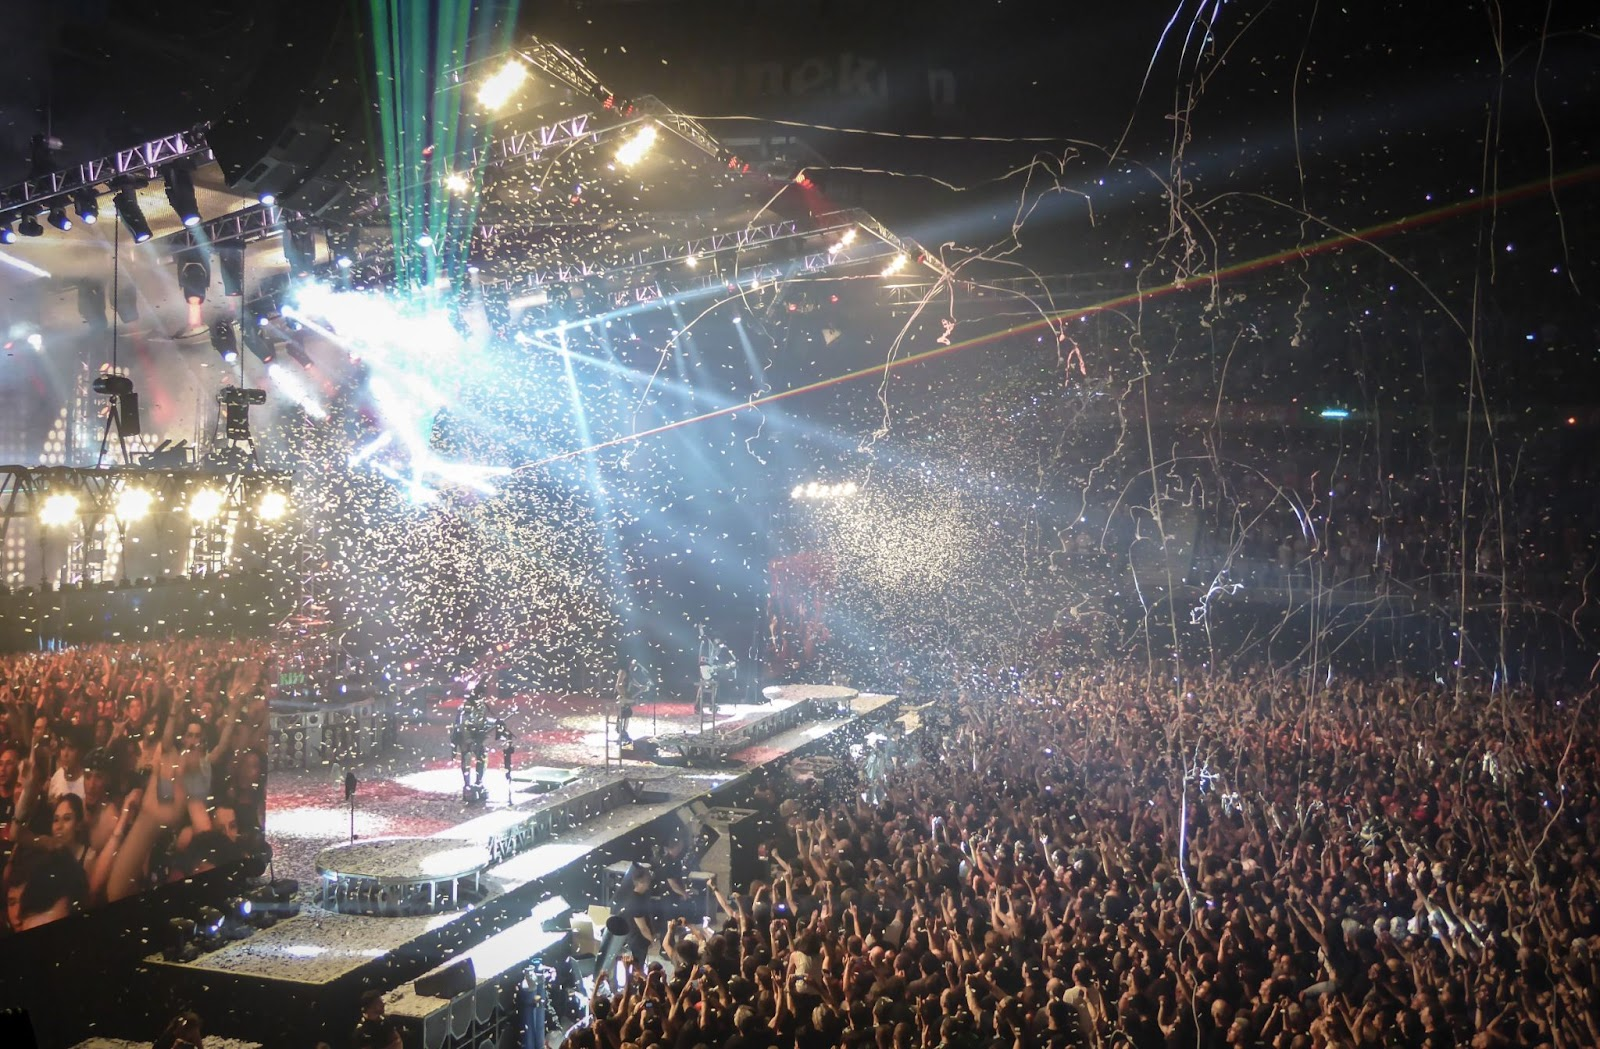 A picture of a music concert with musicians on stage and fans downstage: Going On Tour